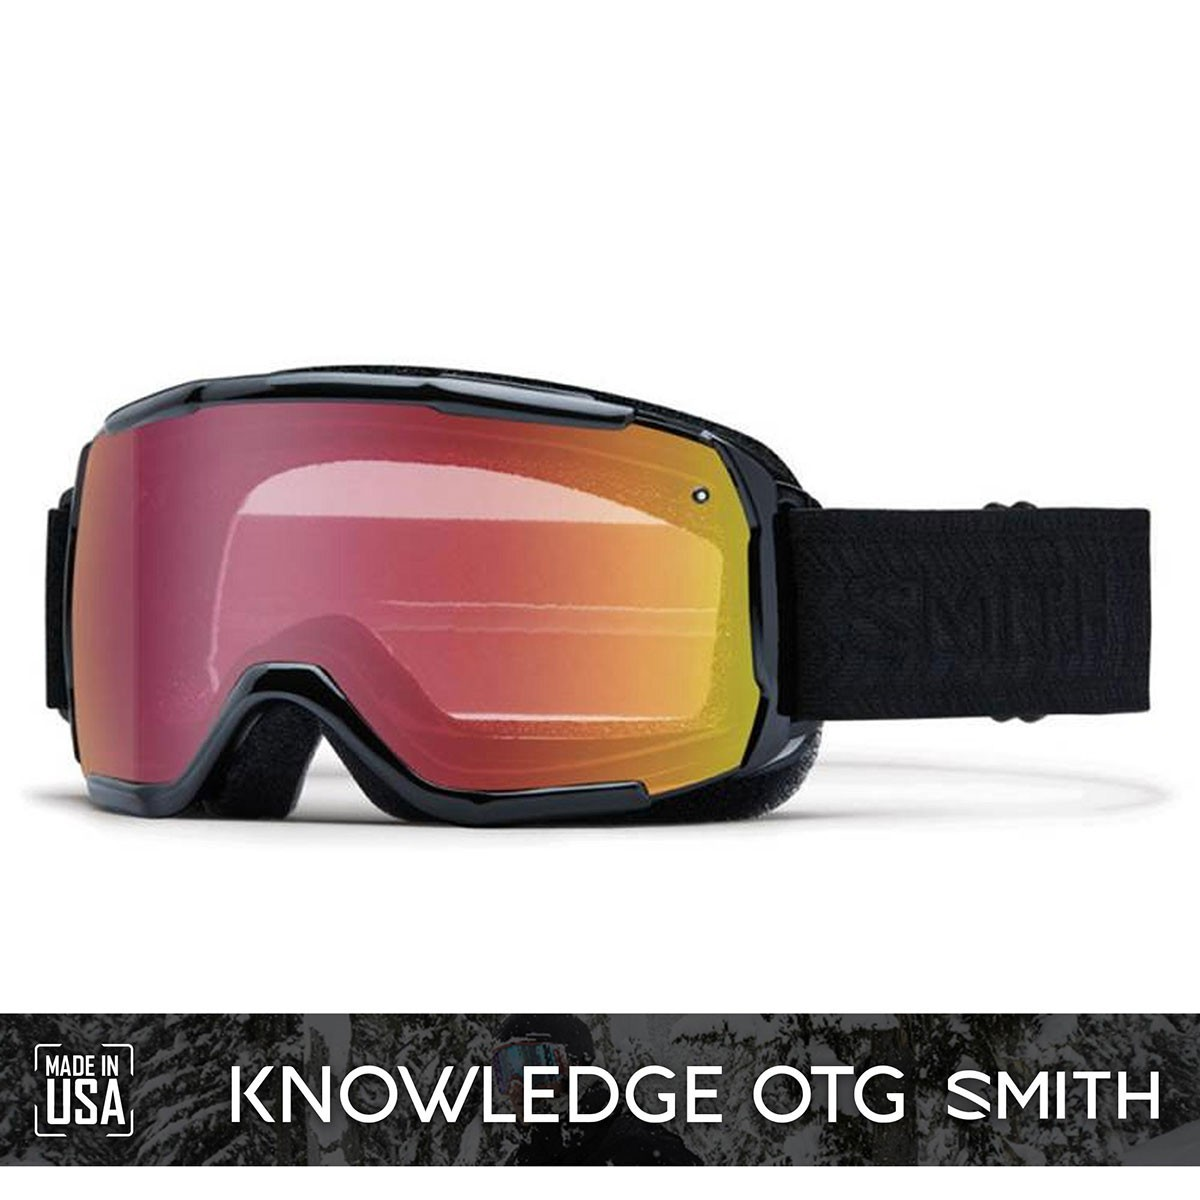 SMITH SHOWCASE OTG Black | S2 RED Sensor Mirror - Изображение - AQUAMATRIX